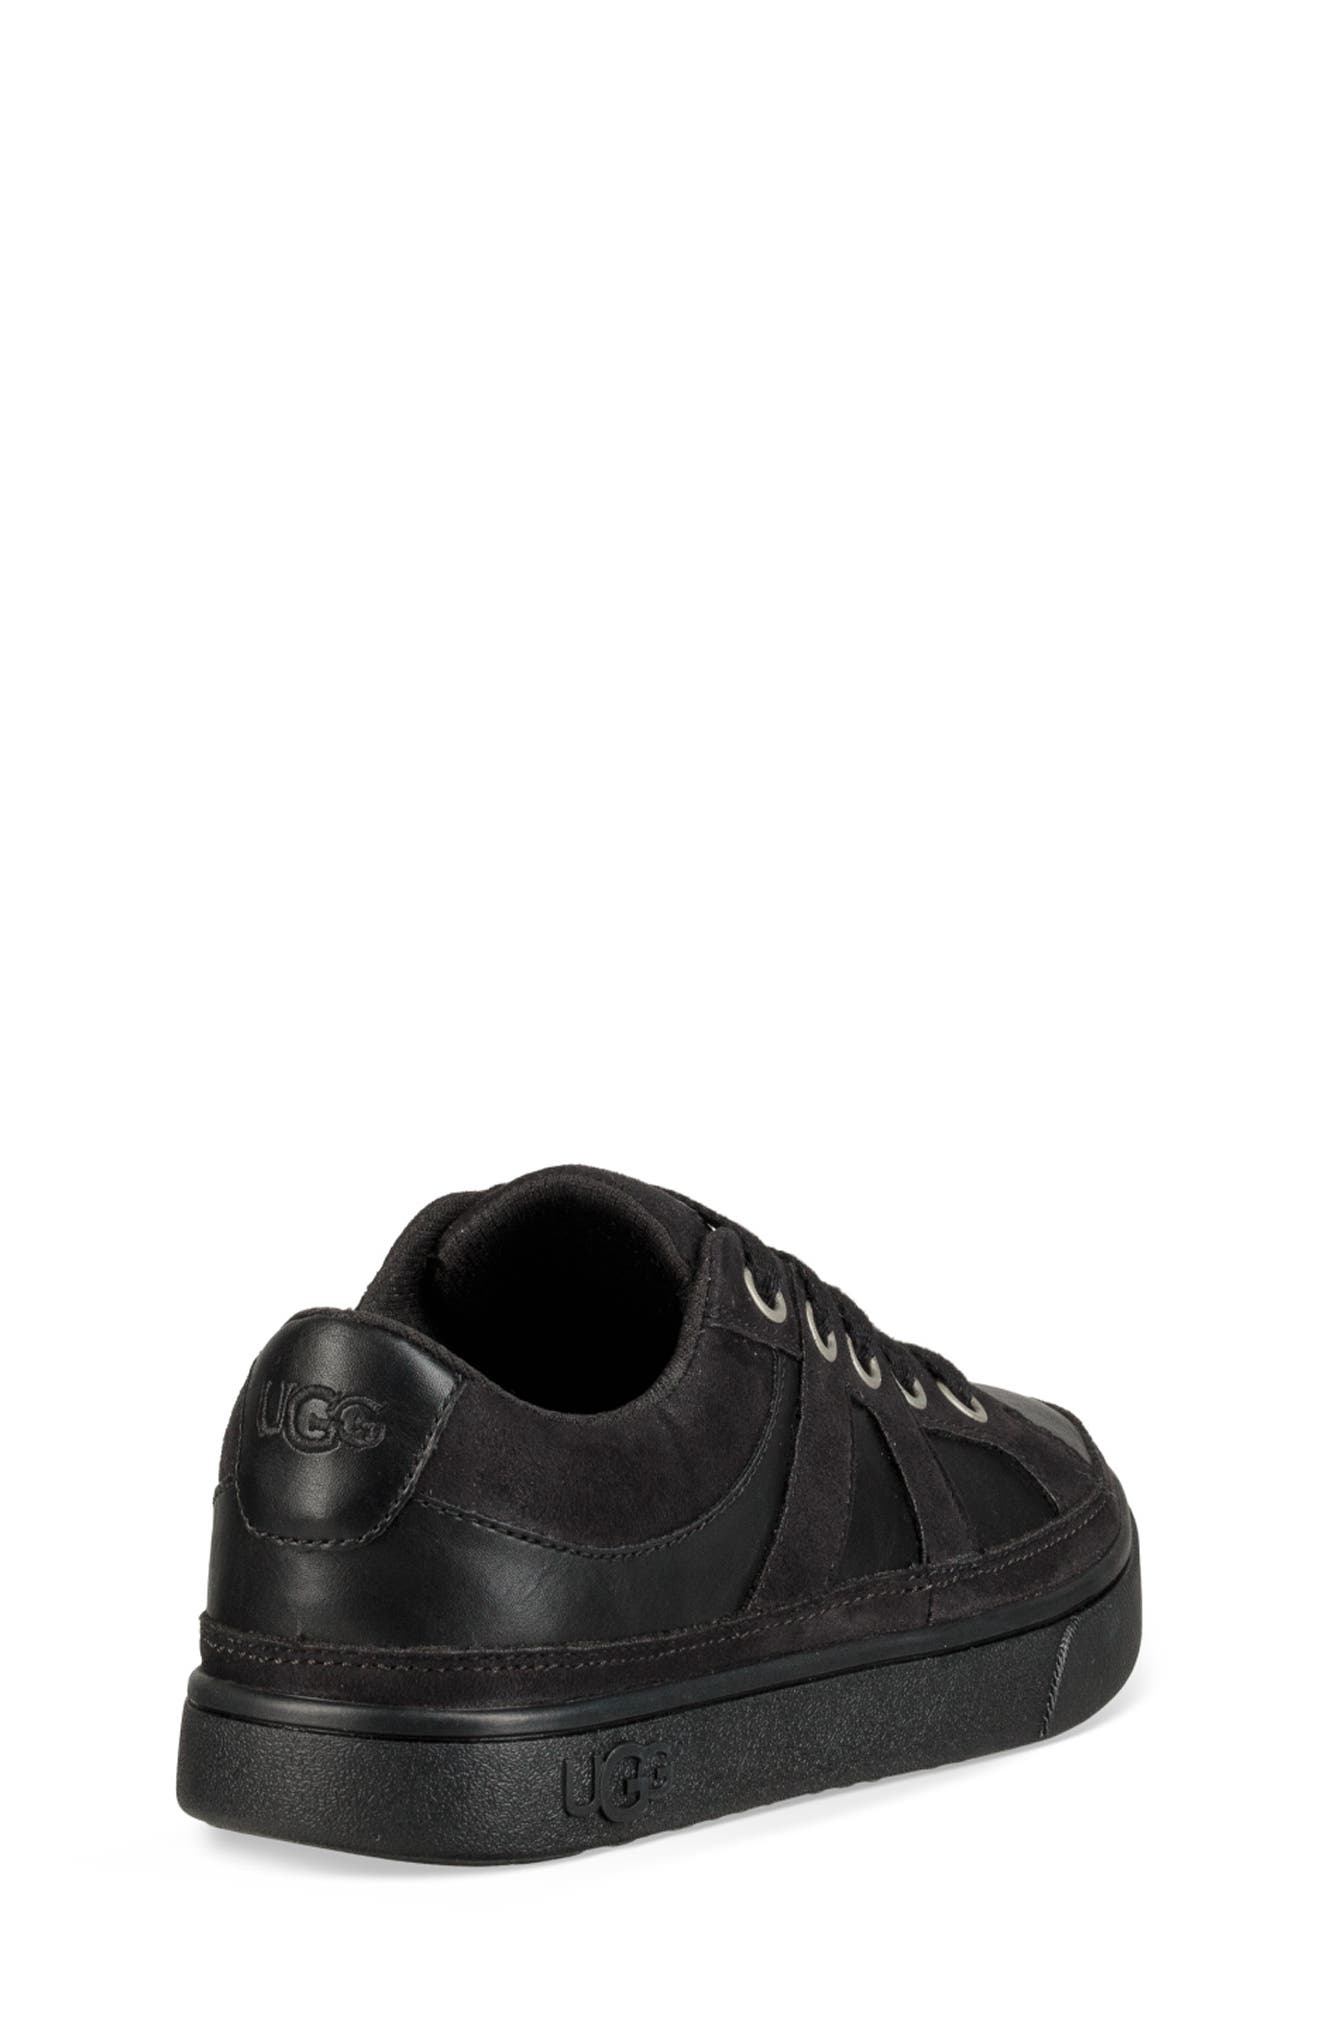 UGG<SUP>®</SUP>, Marcus Sneaker, Alternate thumbnail 2, color, BLACK